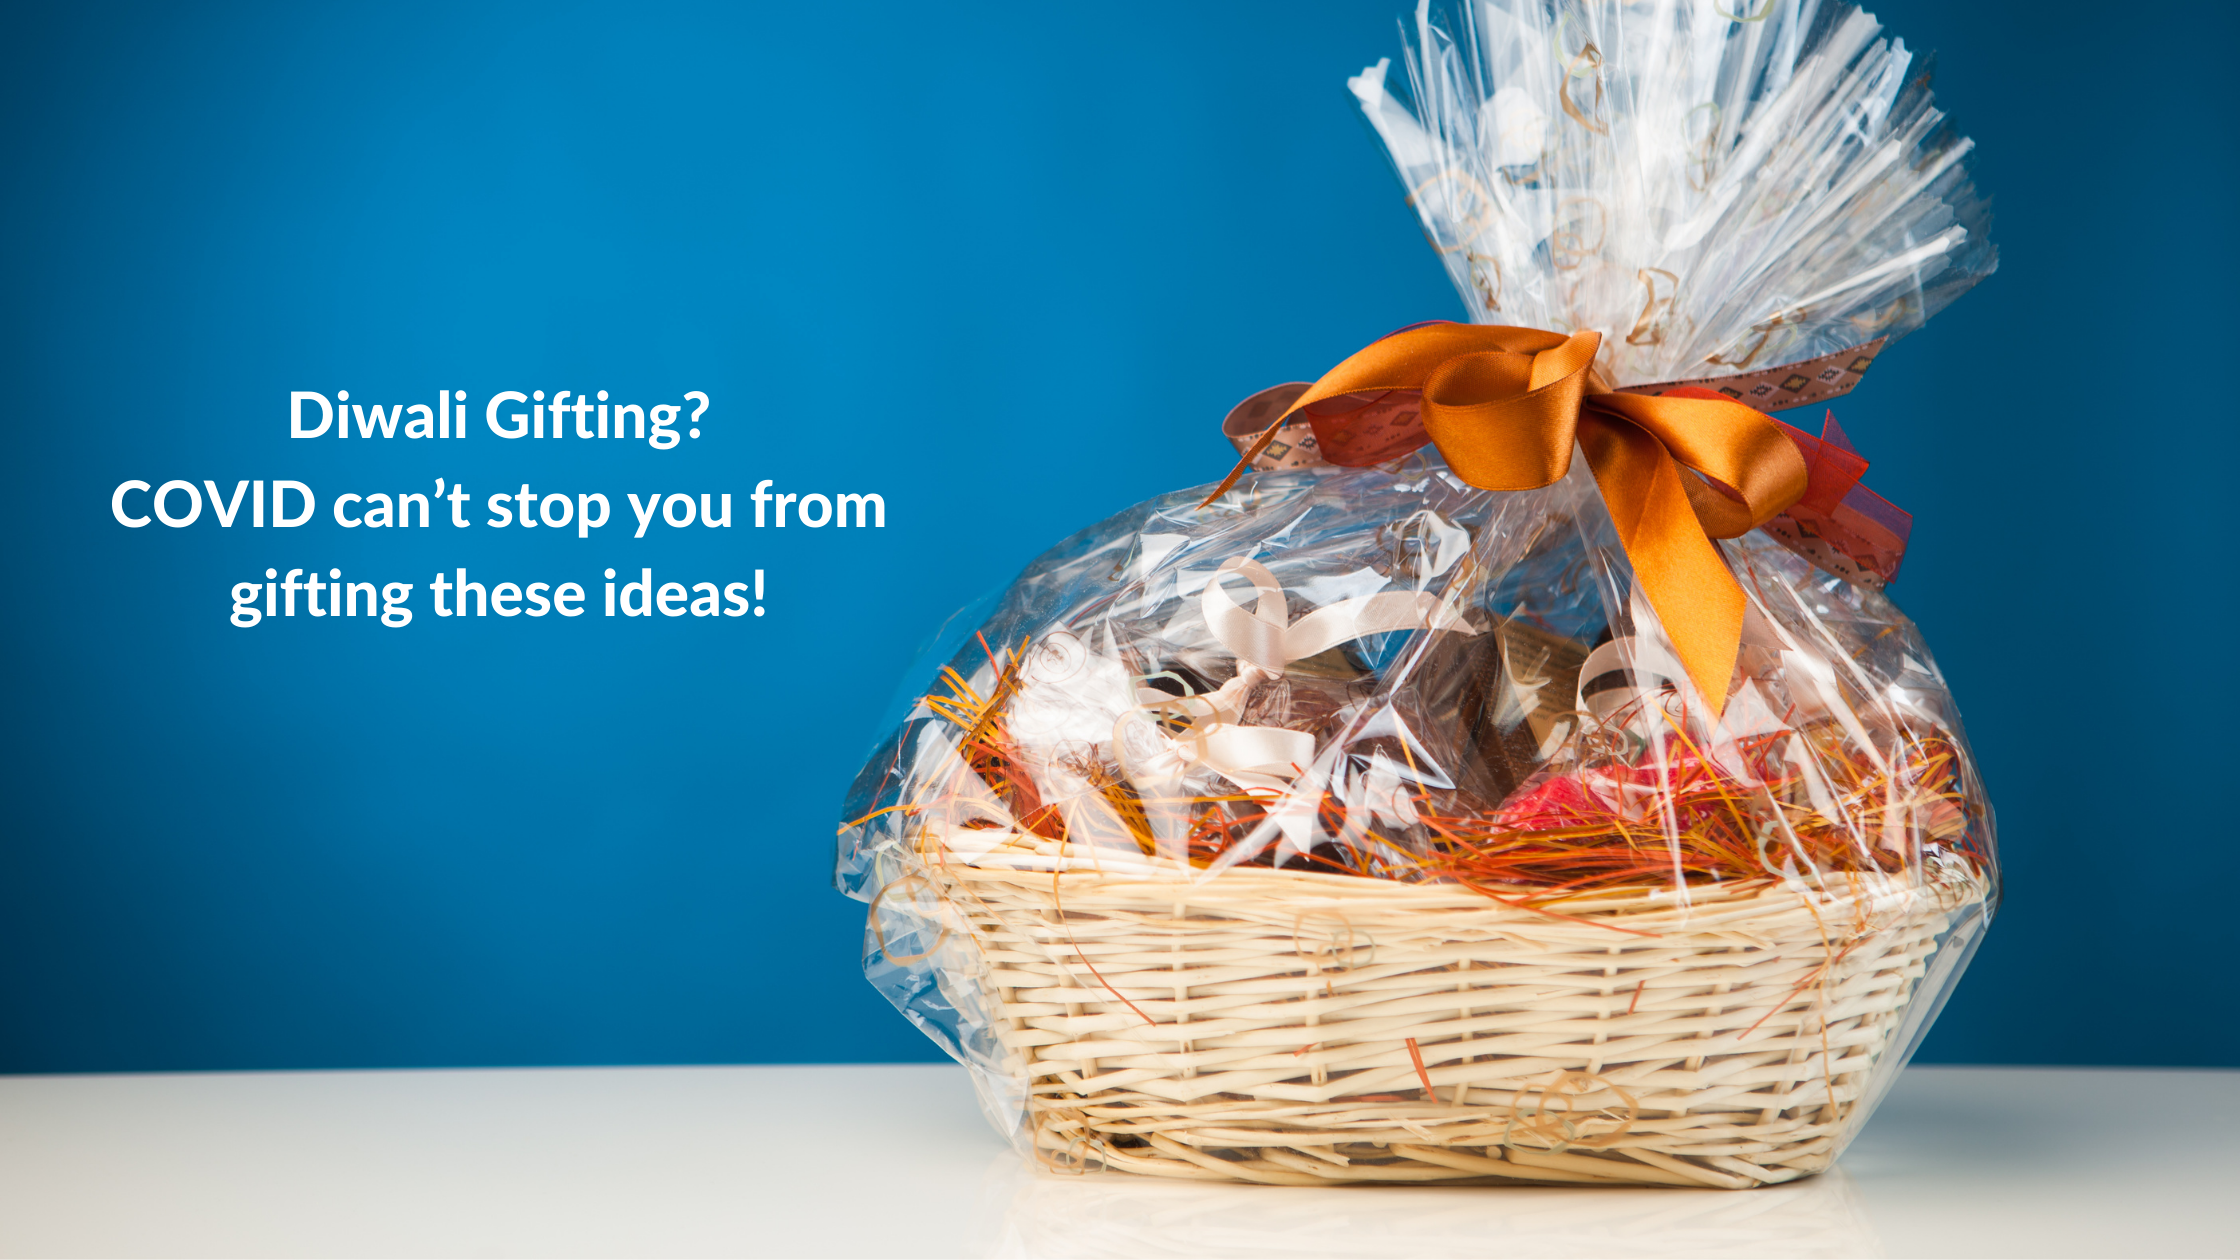 Diwali Gifting? COVID can't stop you from gifting these ideas!